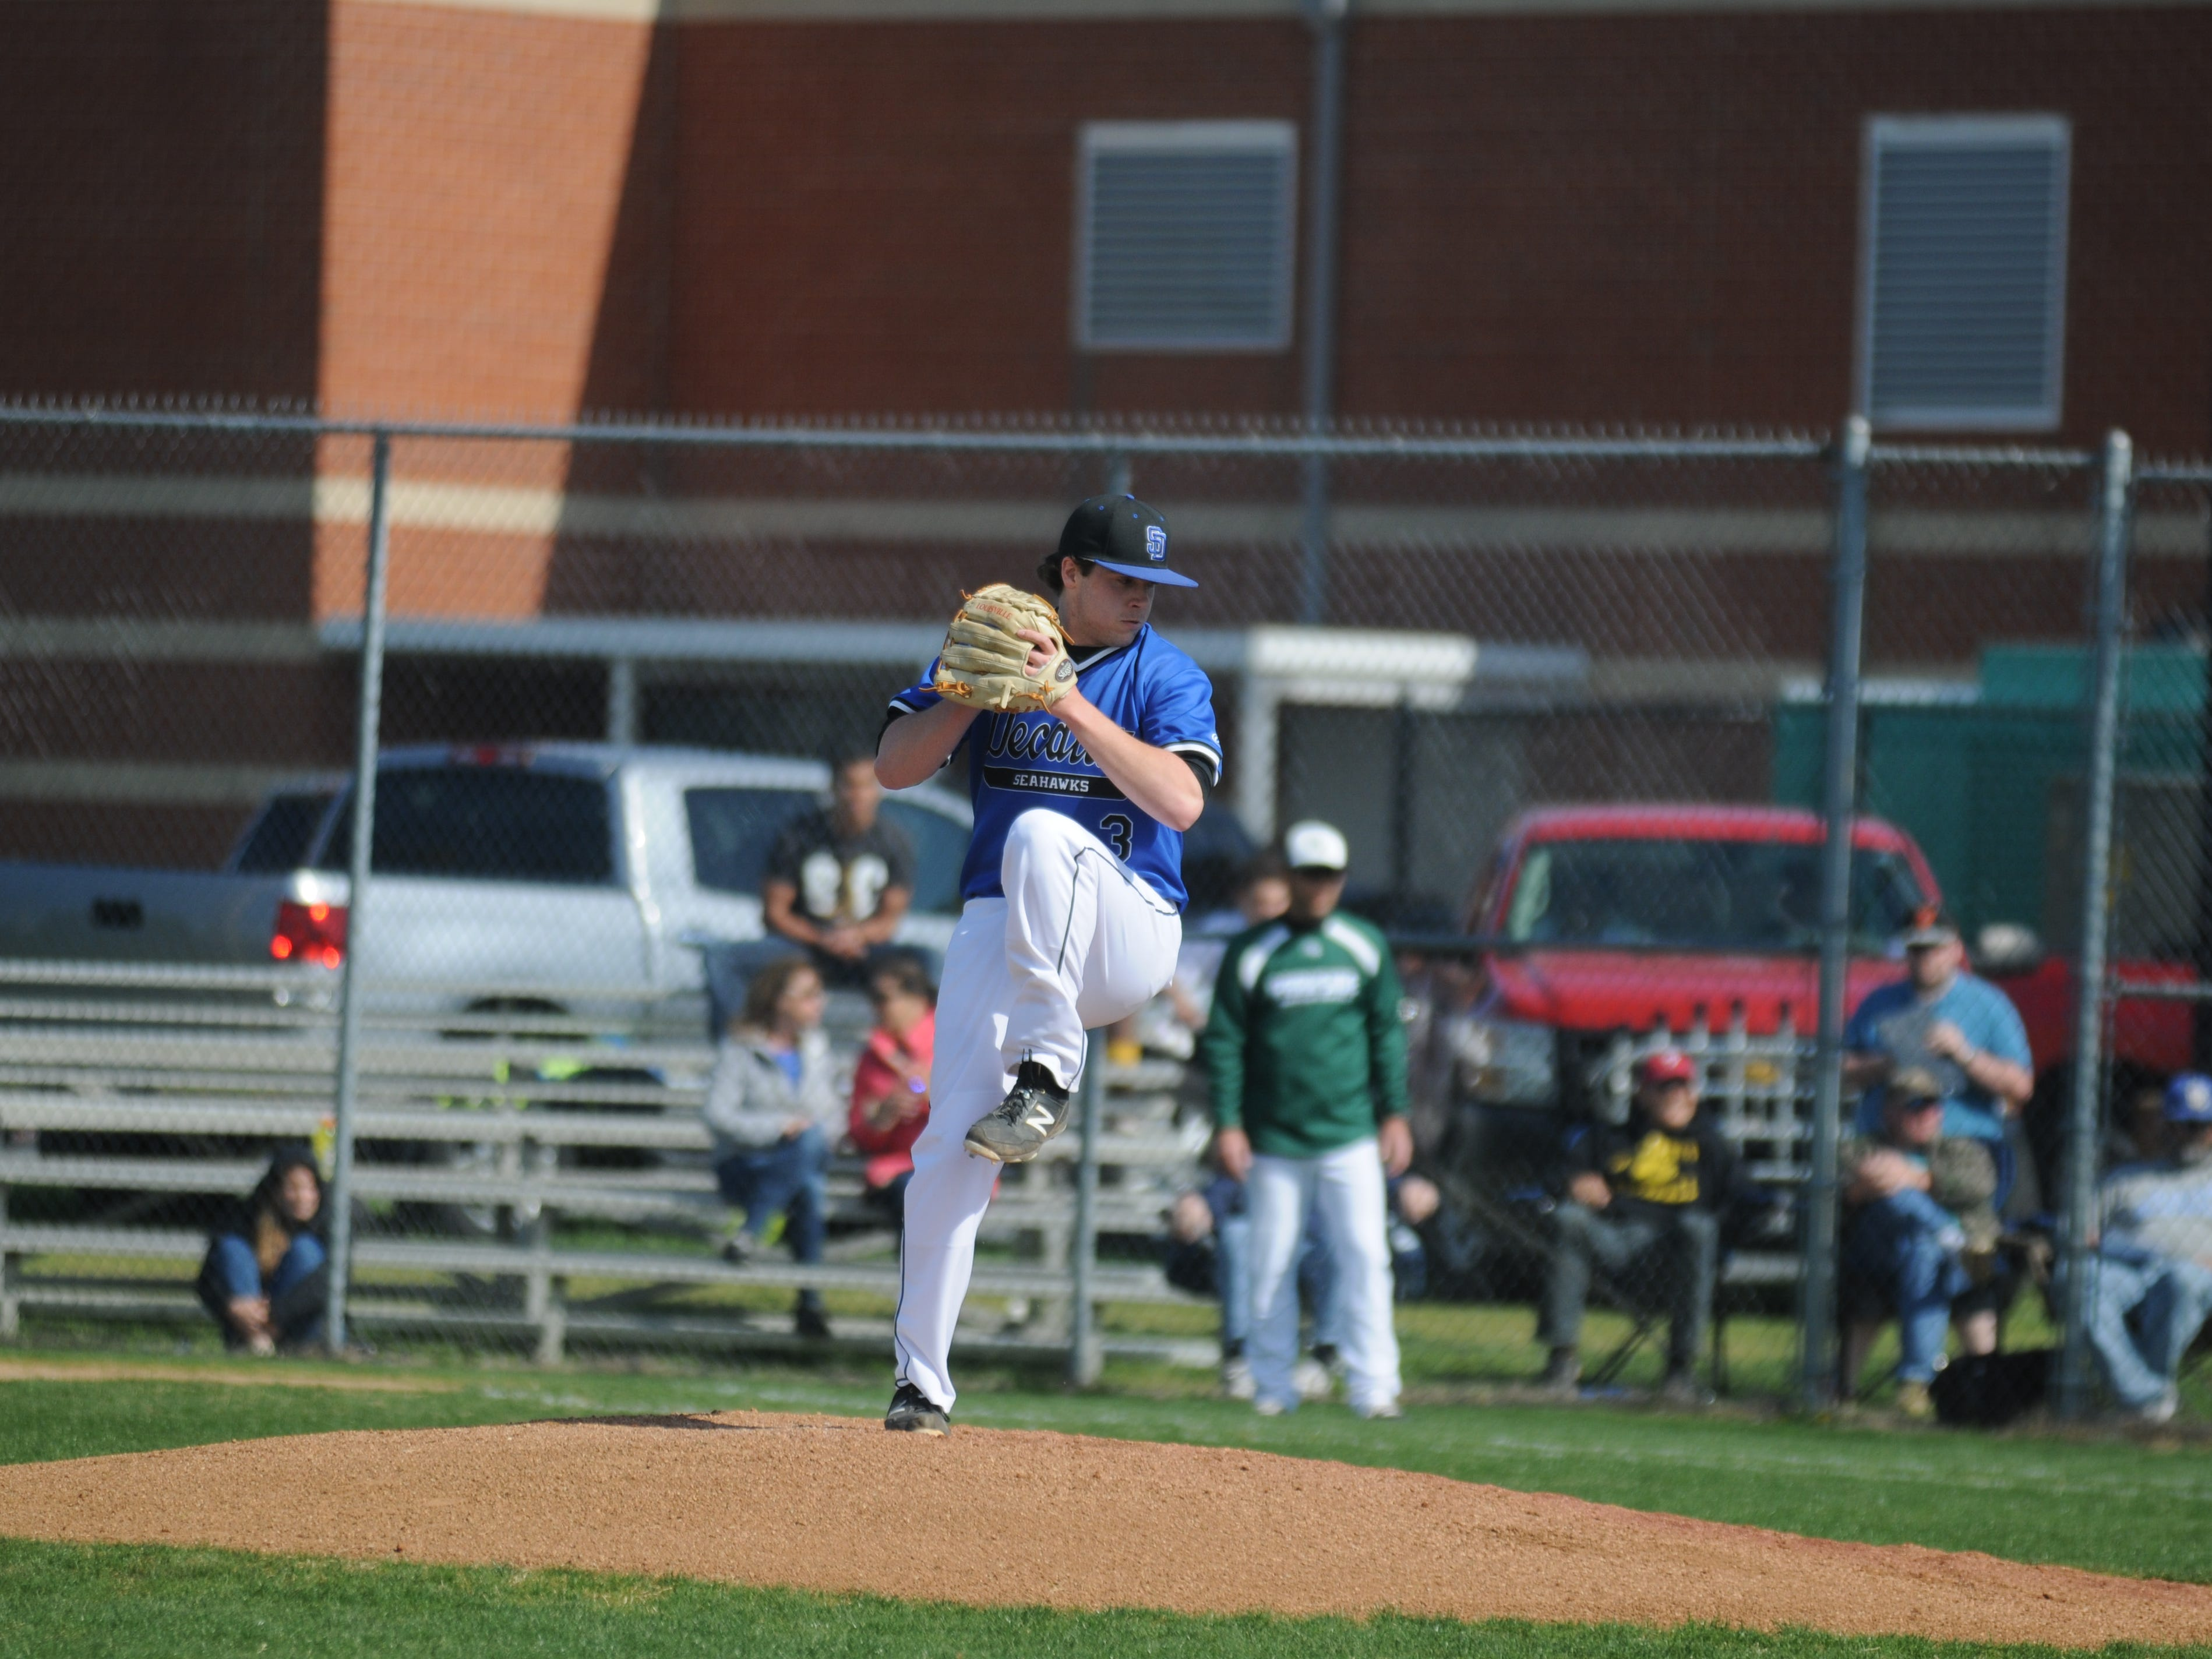 Stephen Decatur senior pitcher Grant Donahue delivers a pitch against Parkside on Wednesday in Berlin.